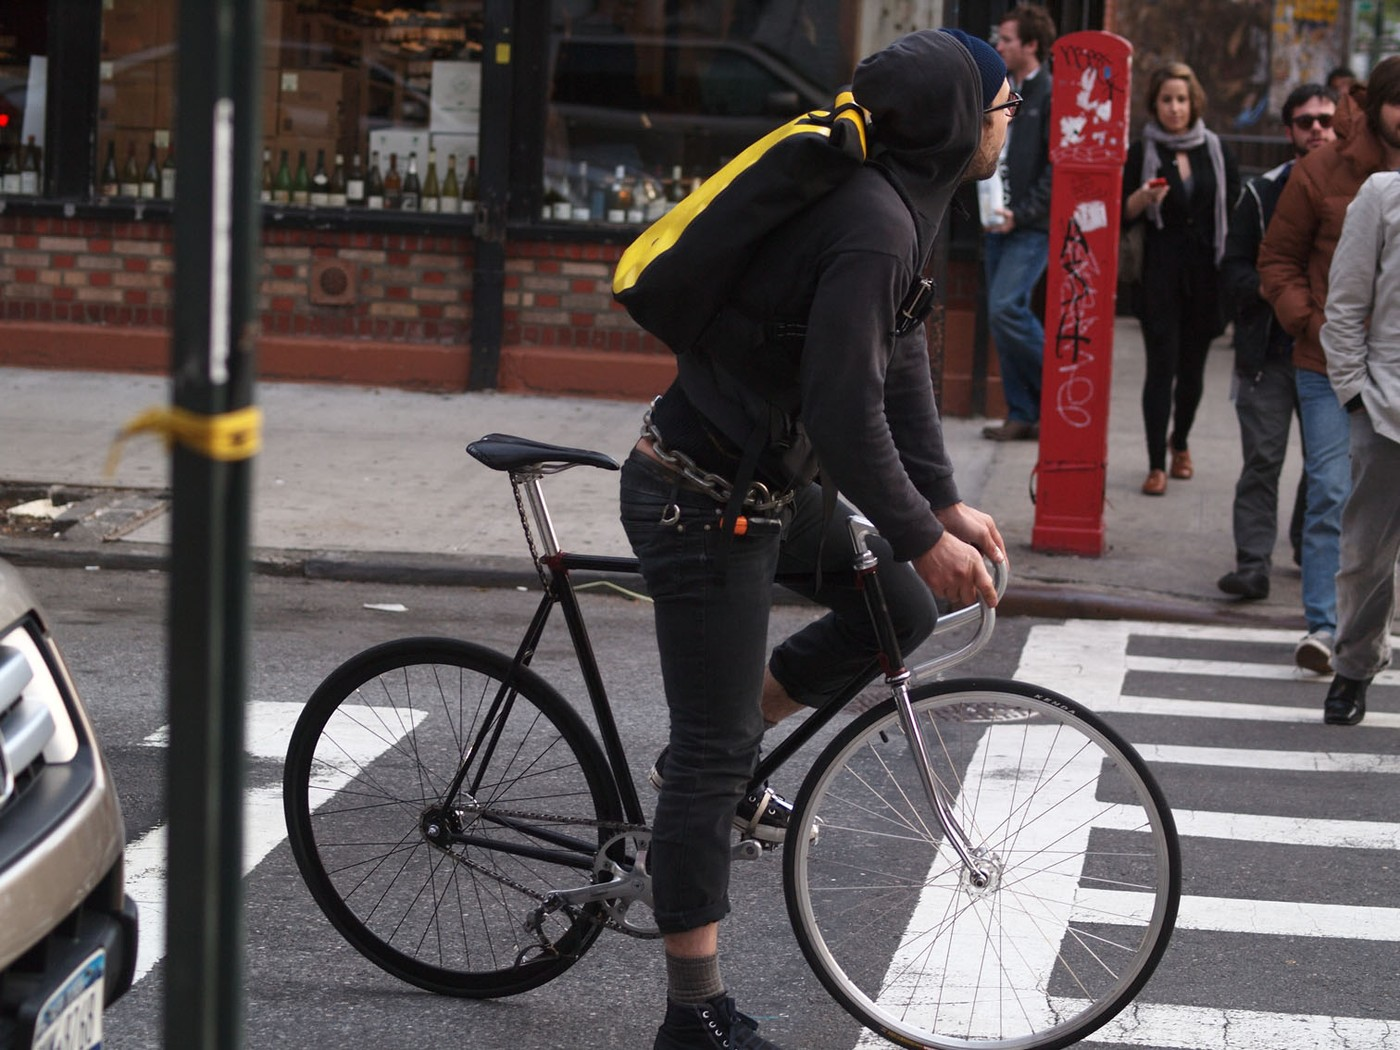 Demons on fixed gear bikes - WeLoveCycling magazine